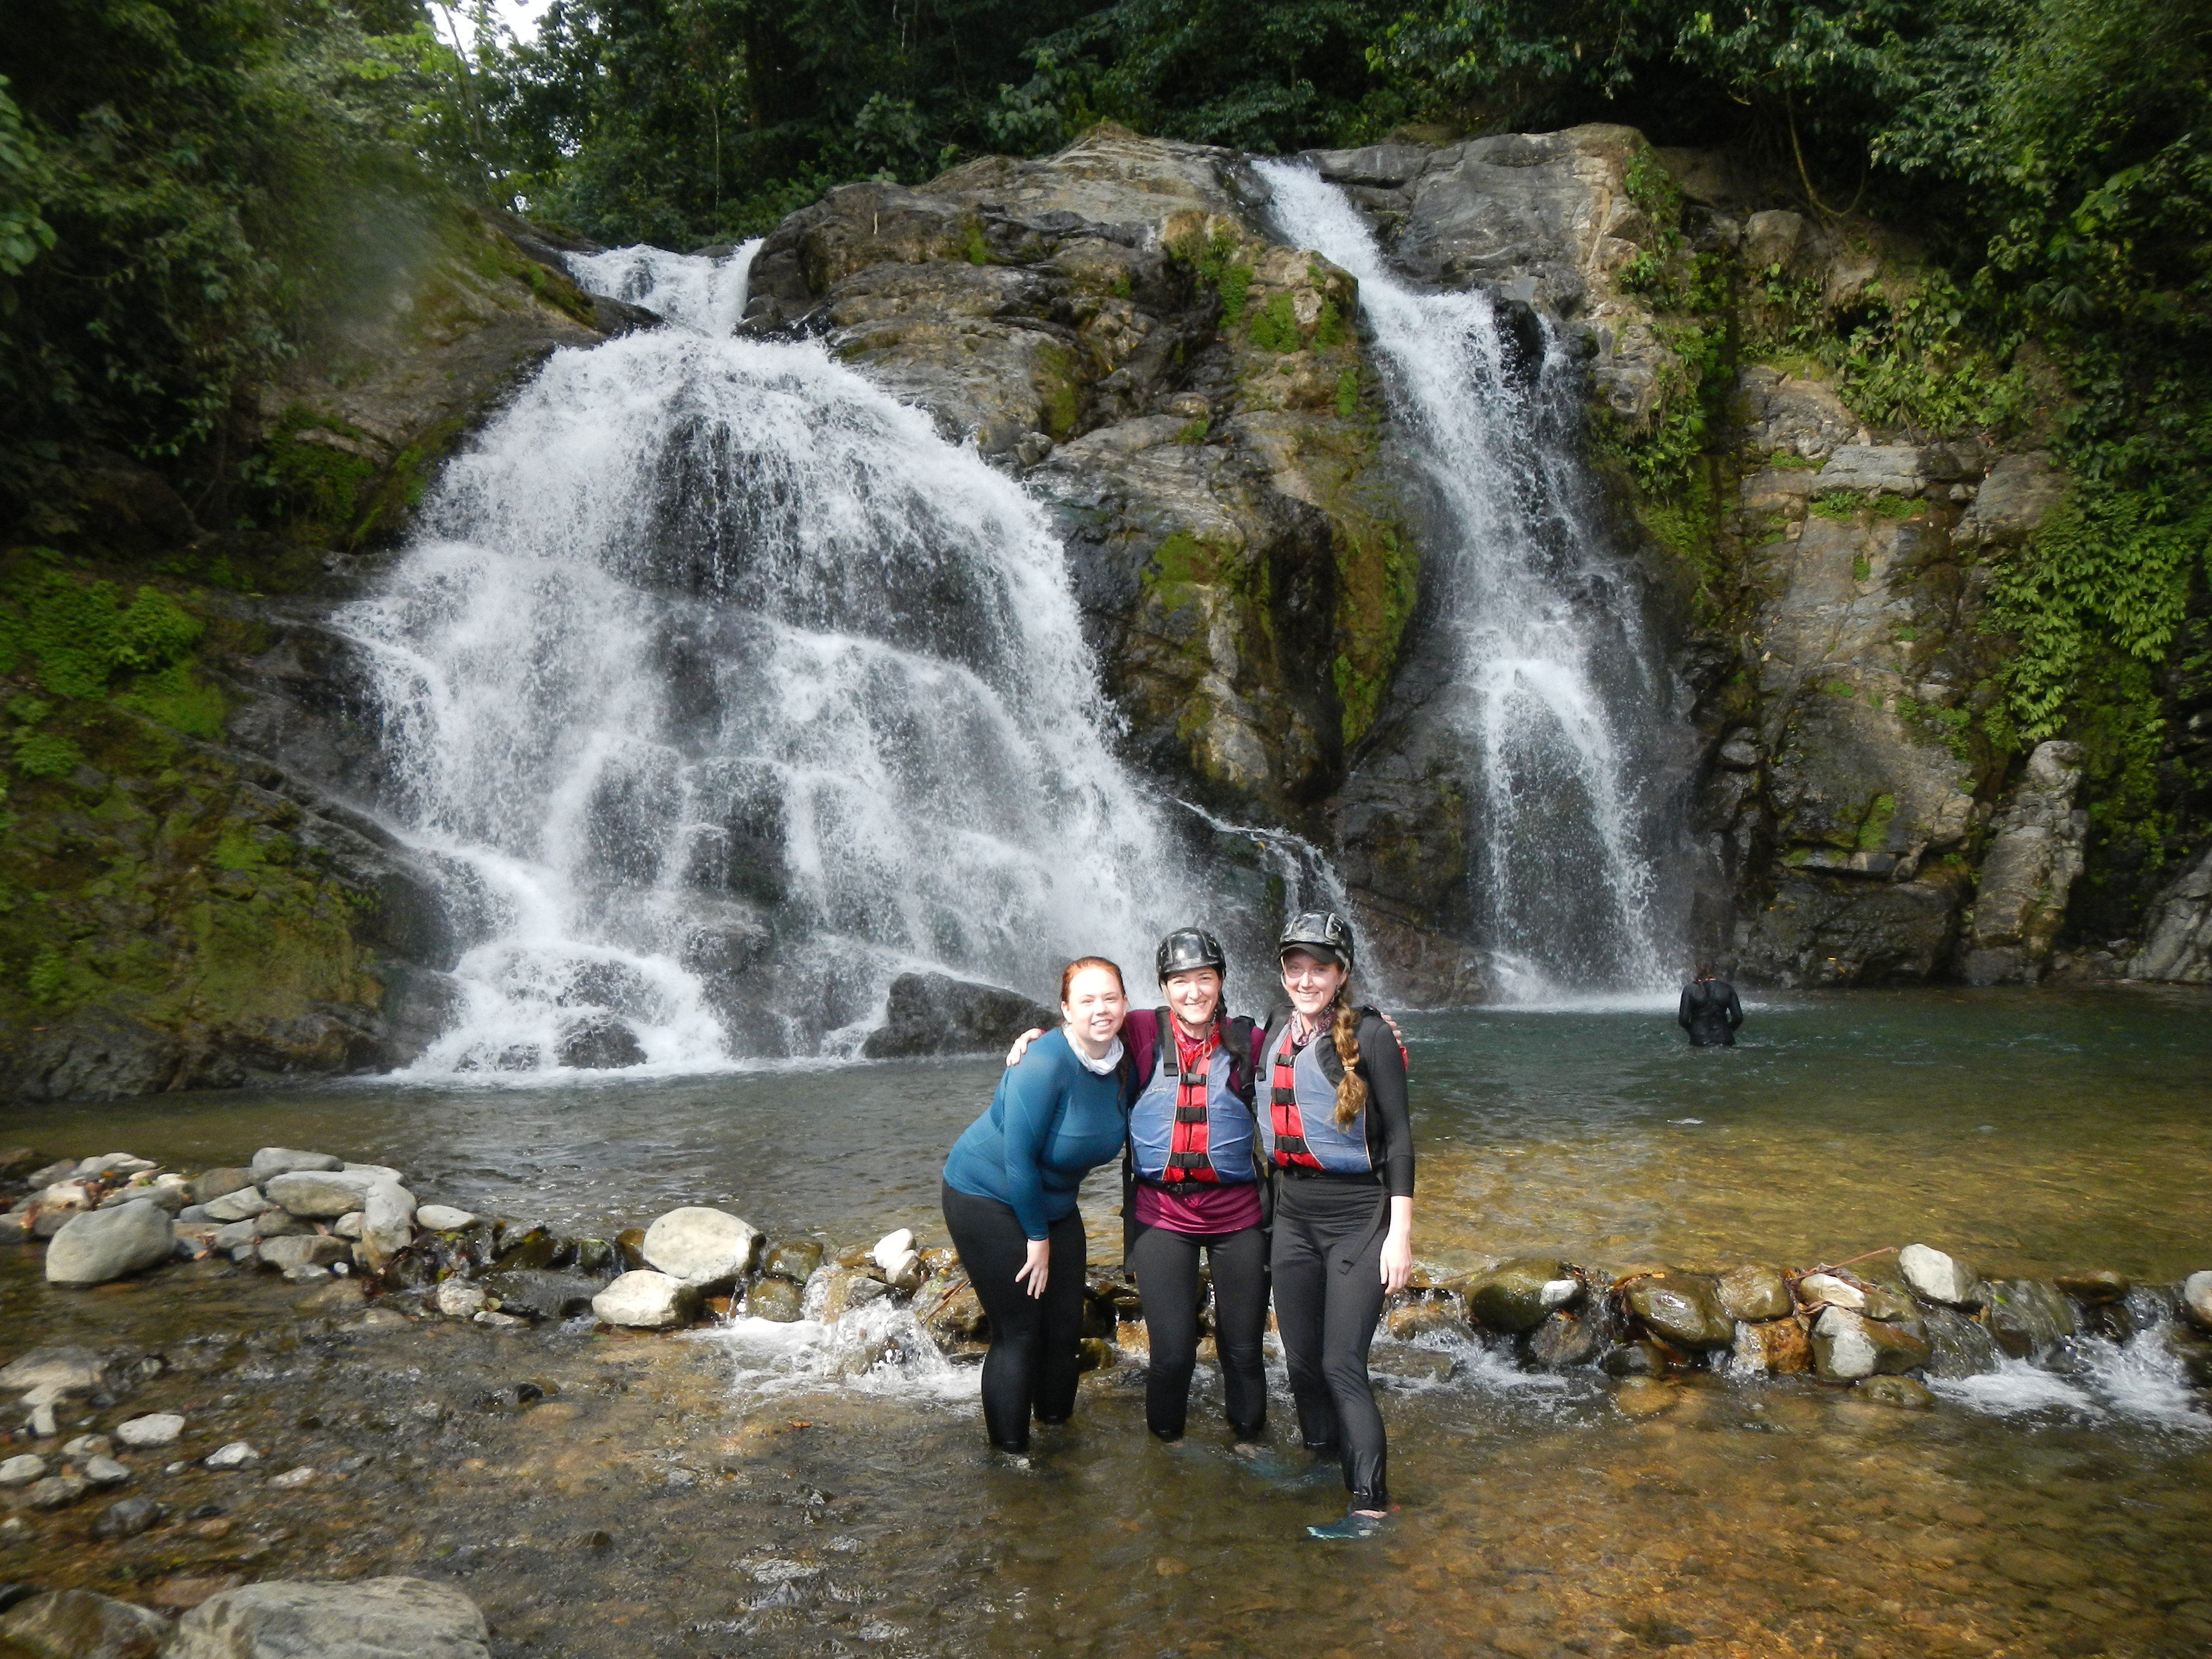 Students in front of a waterfall